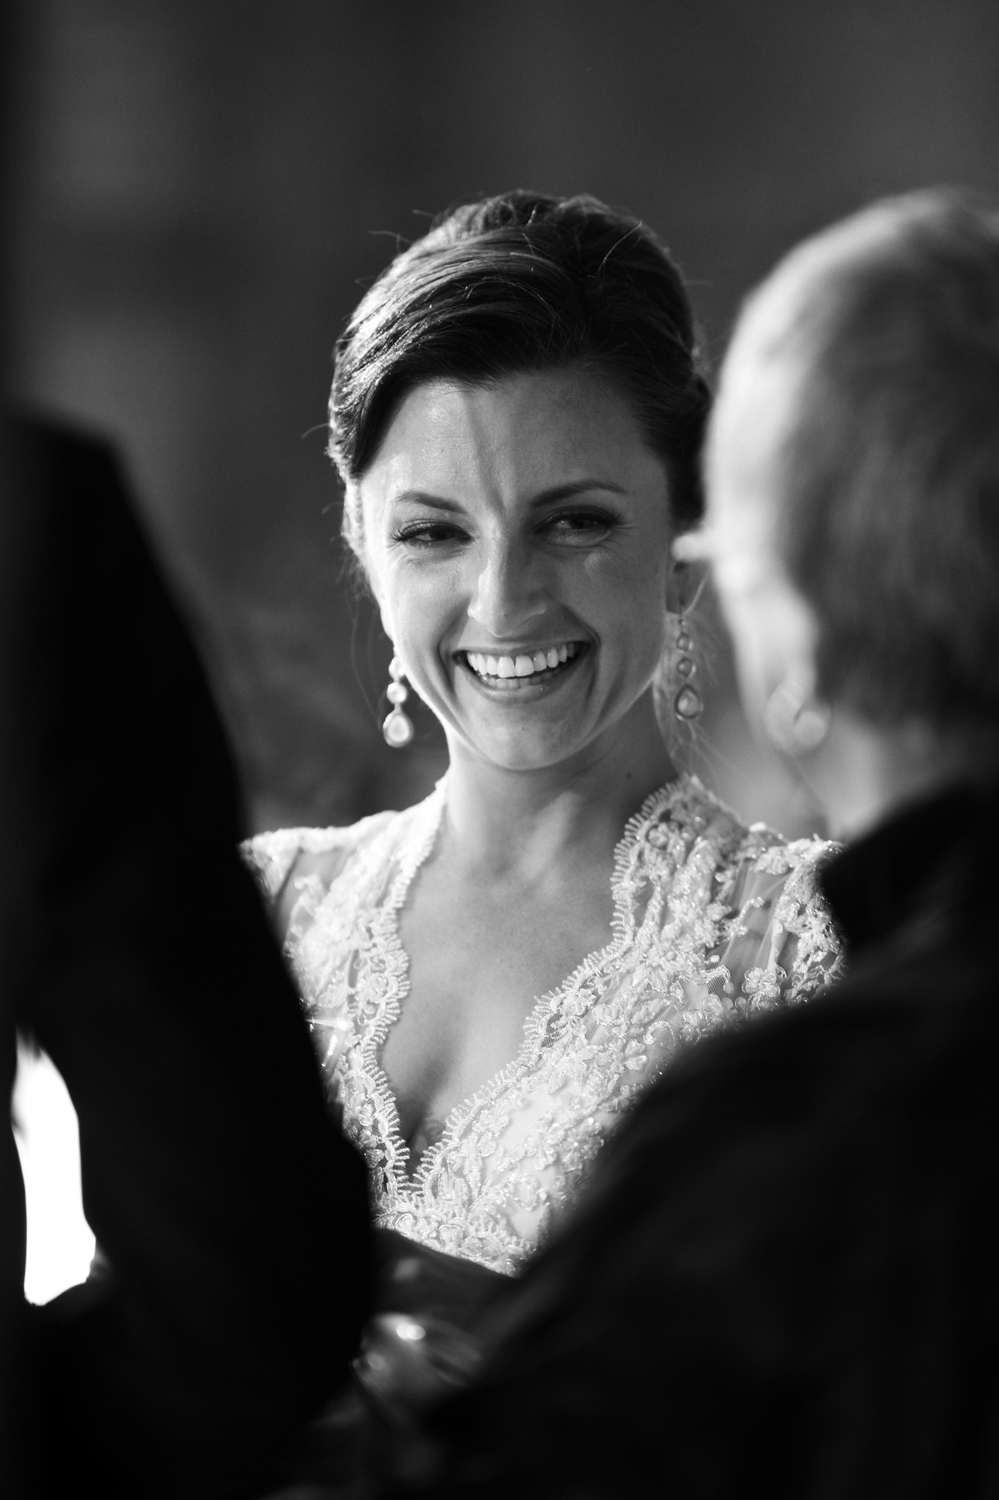 Bride laughs during wedding ceremony at Morgan Manufacturing in Chicago.